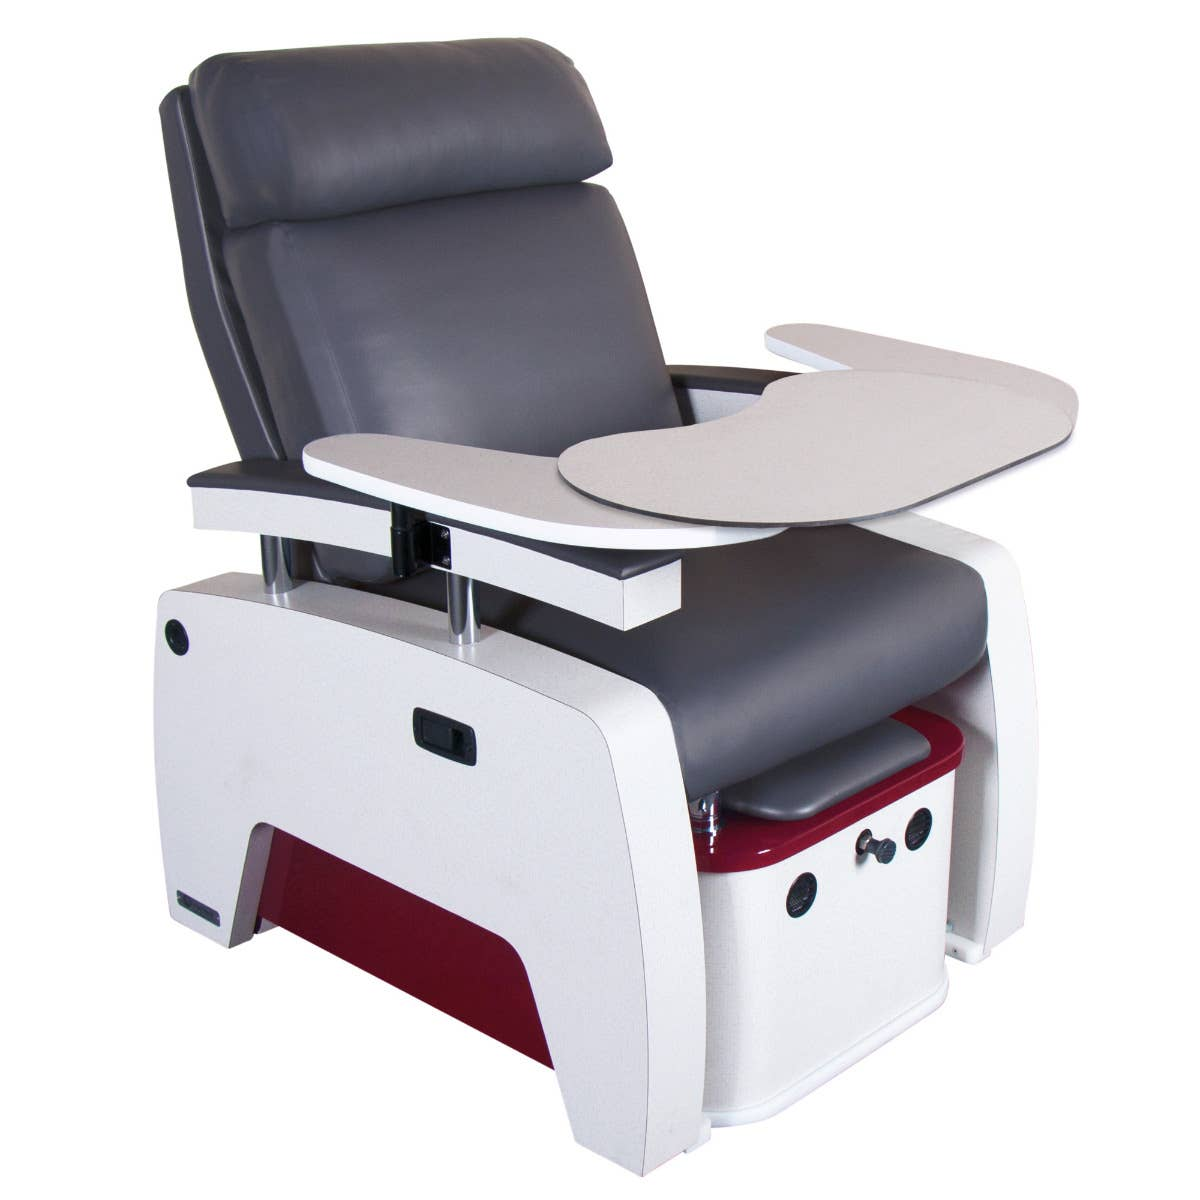 manicure-pedicure_pedicure-chairs_5th-avenue-with-plumbed-footbath_06